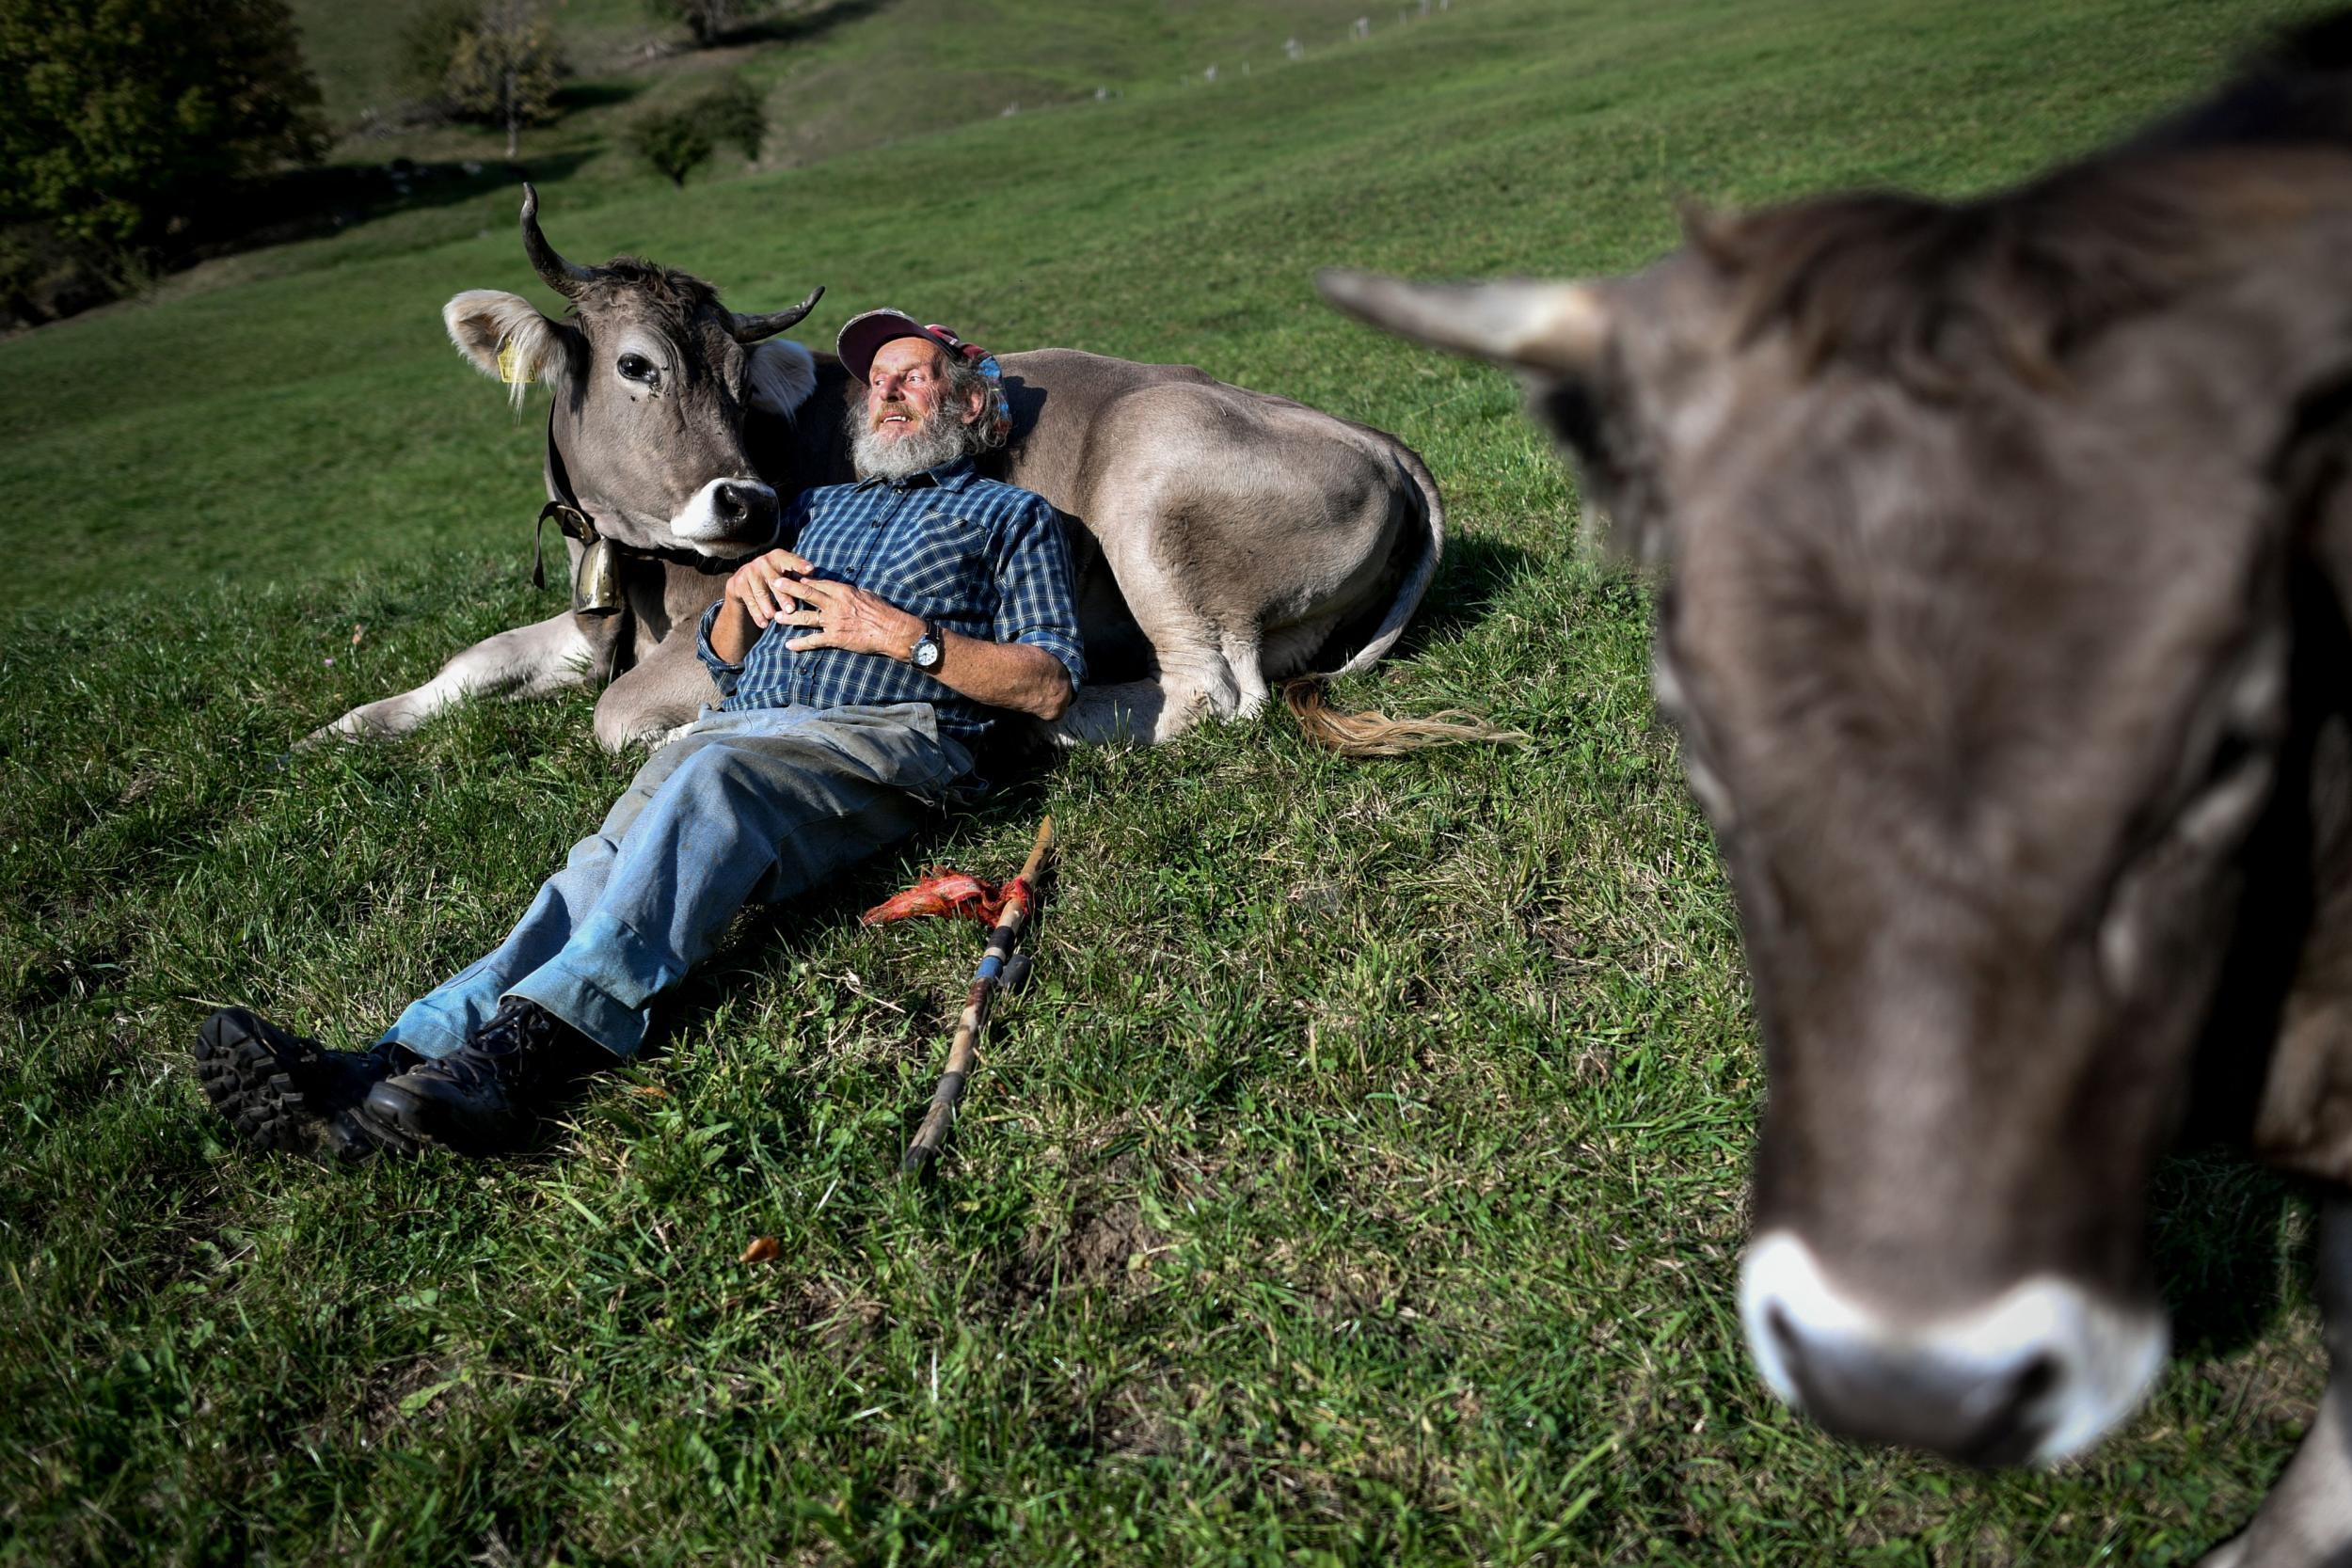 https://www.independent.co.uk/arts-entertainment/cow-cuddling-america-netherlands-therapy-a9007096.html